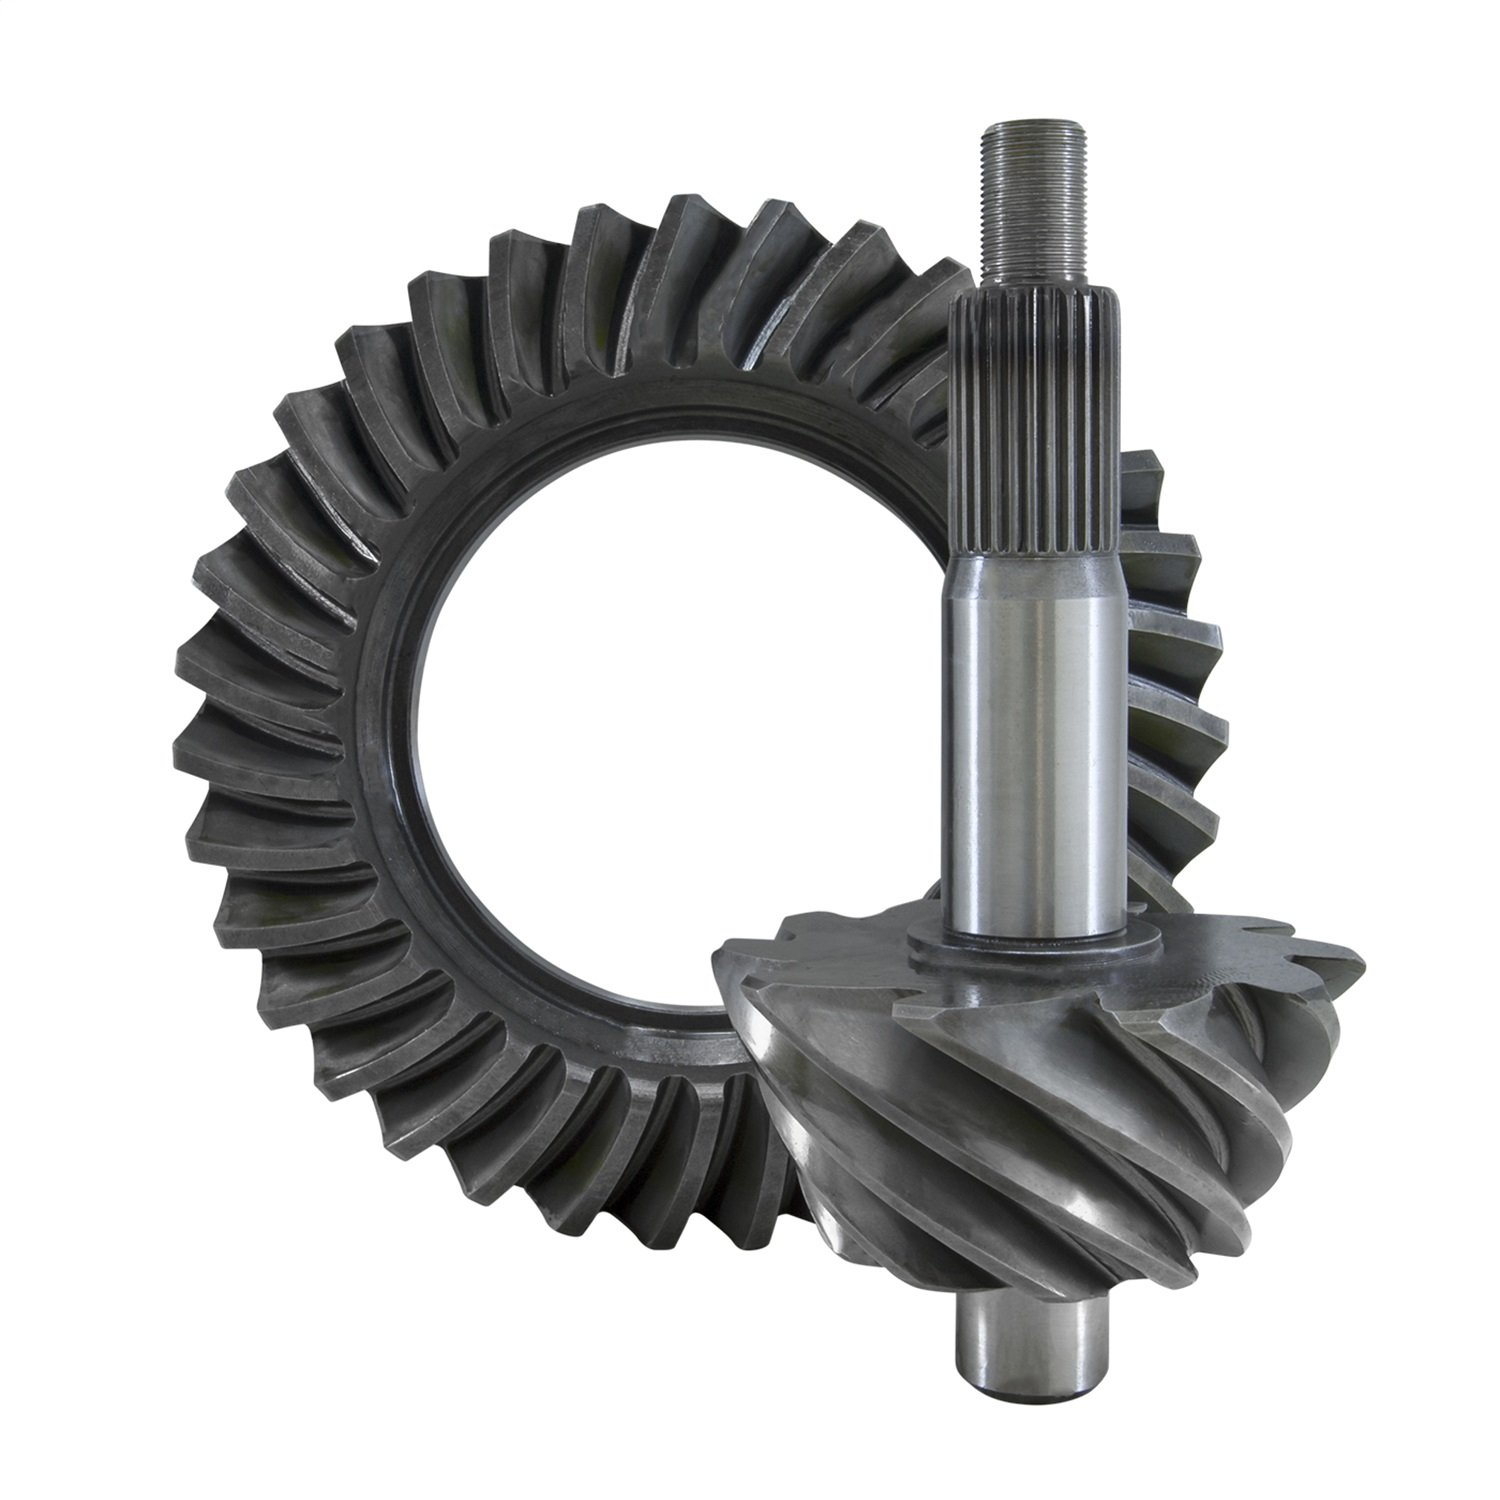 Yukon Gear & Axle (YG F9-411) High Performance Ring & Pinion Gear Set for Ford 9 Differential